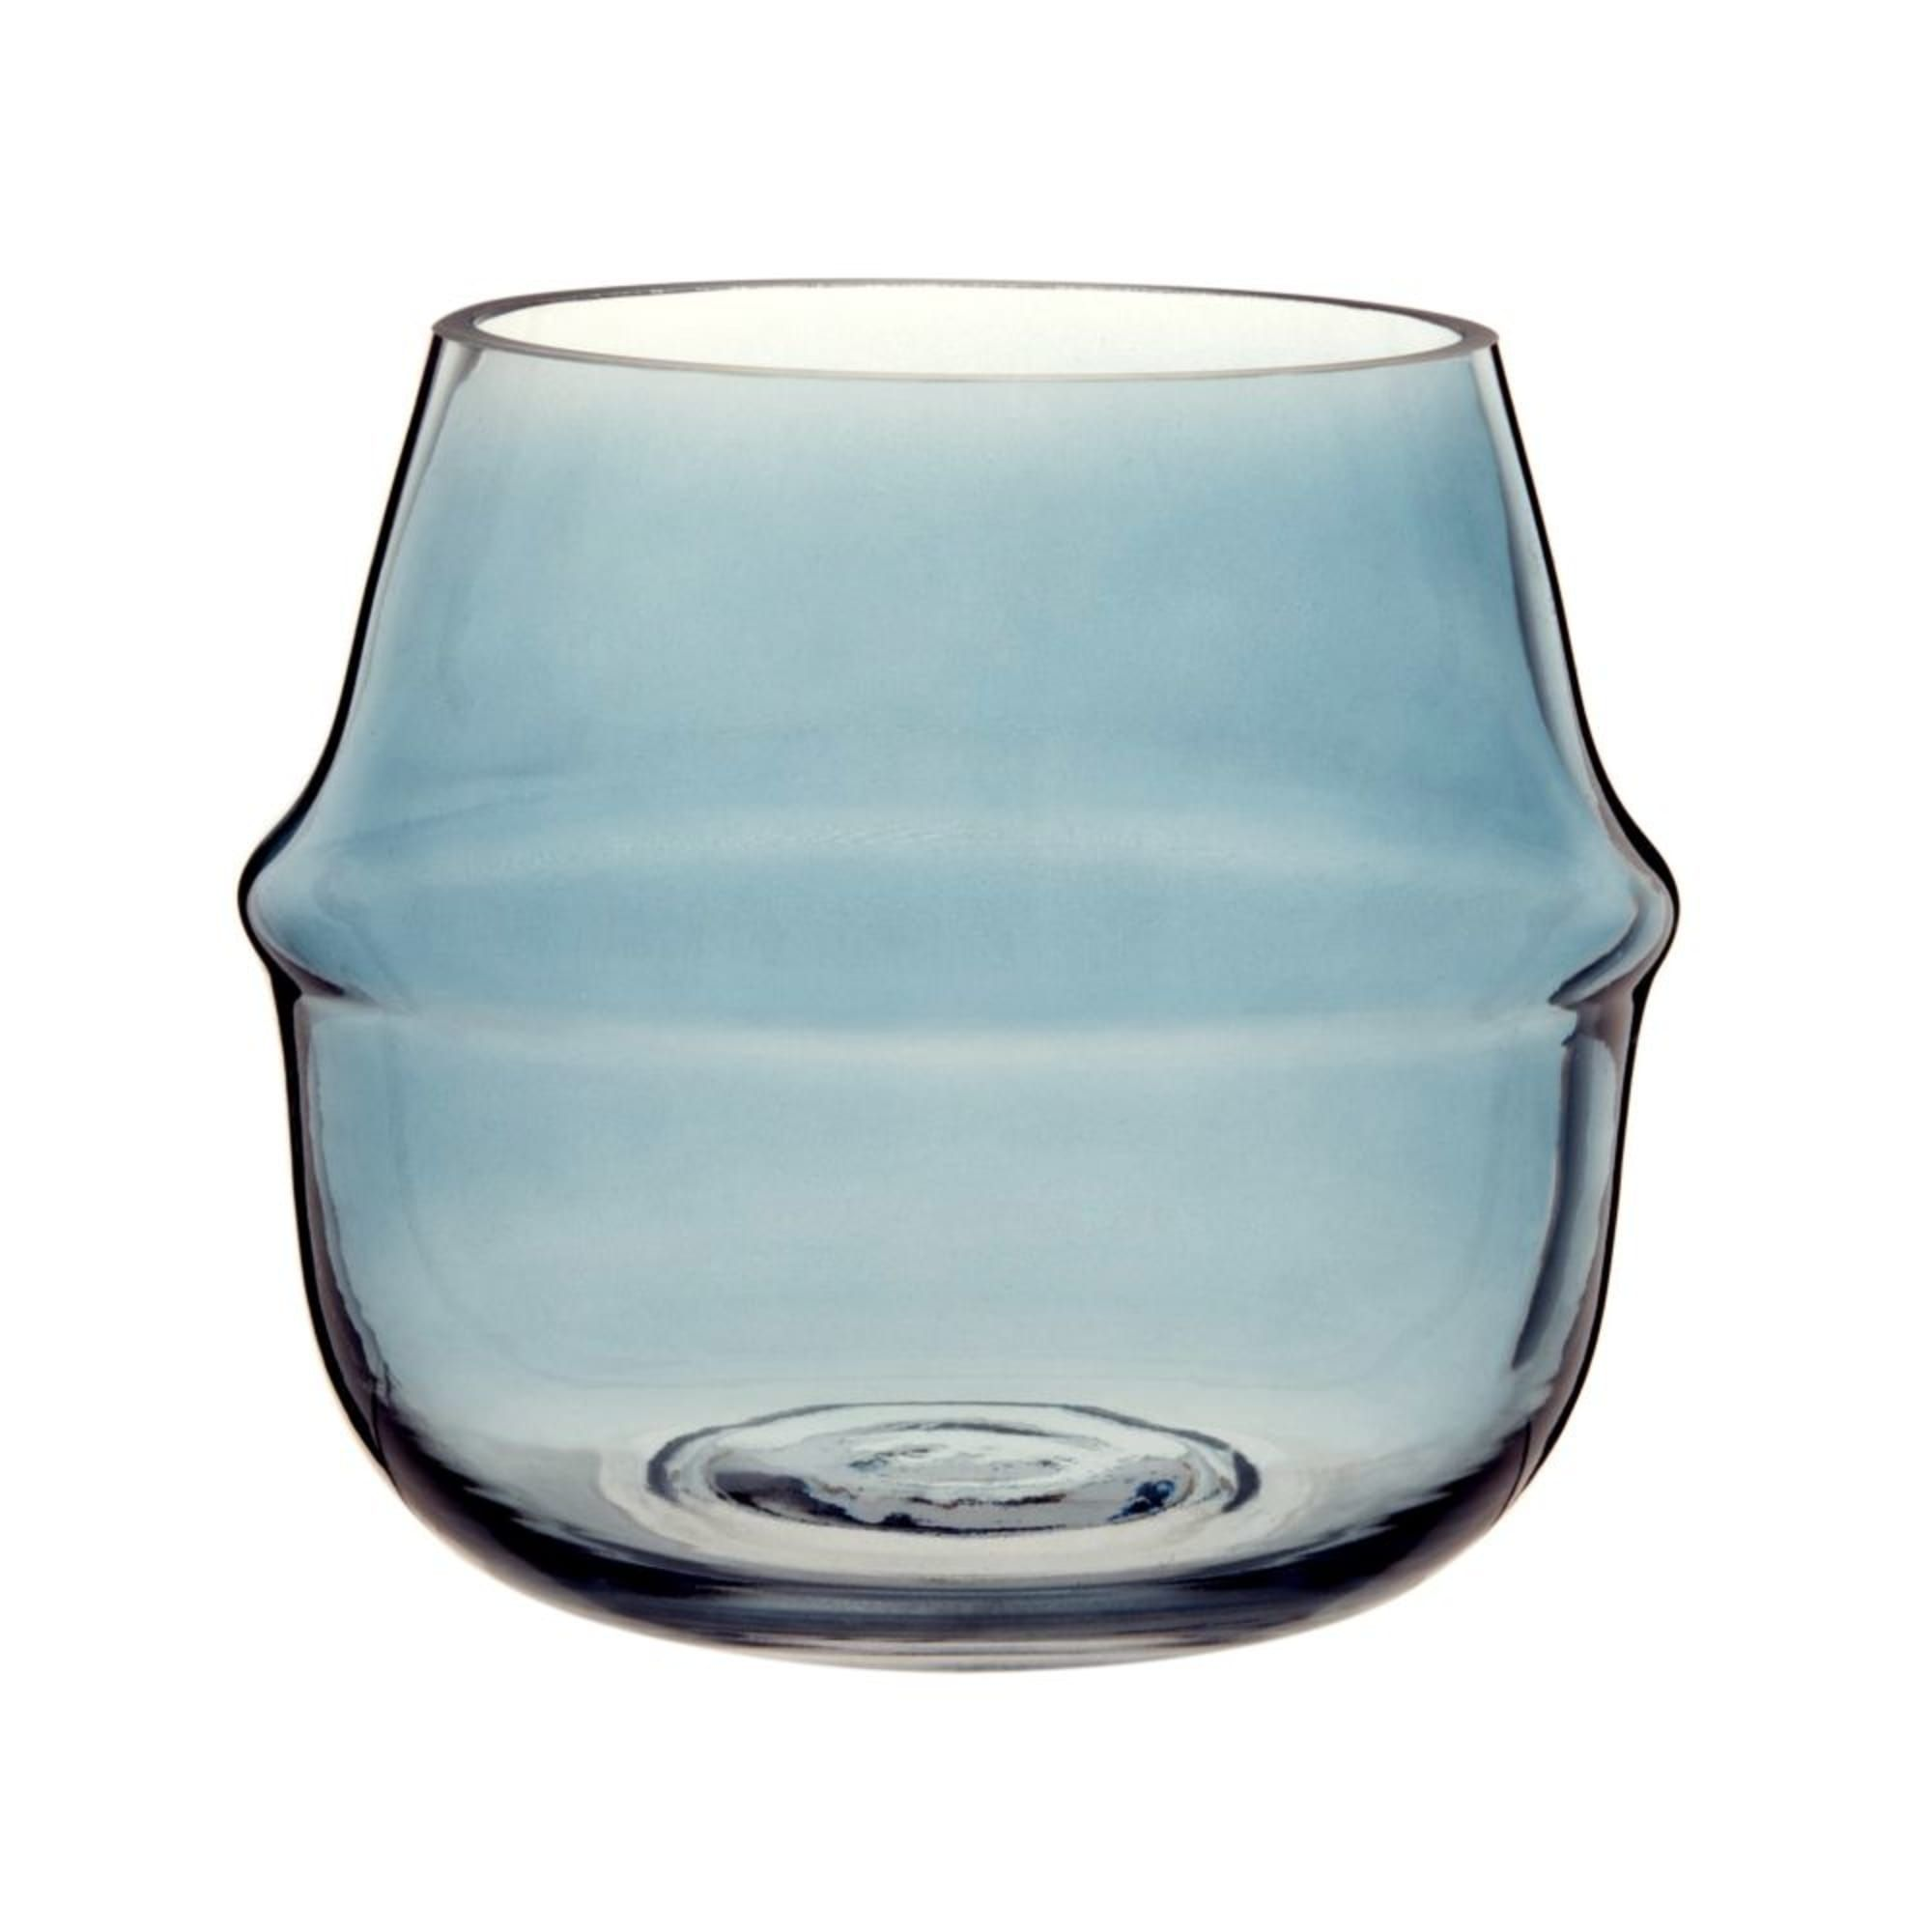 Windlicht Aus Blau Getöntem Glas Maisons Du Monde Glass Candle Holders Glass Candle Candle Holders